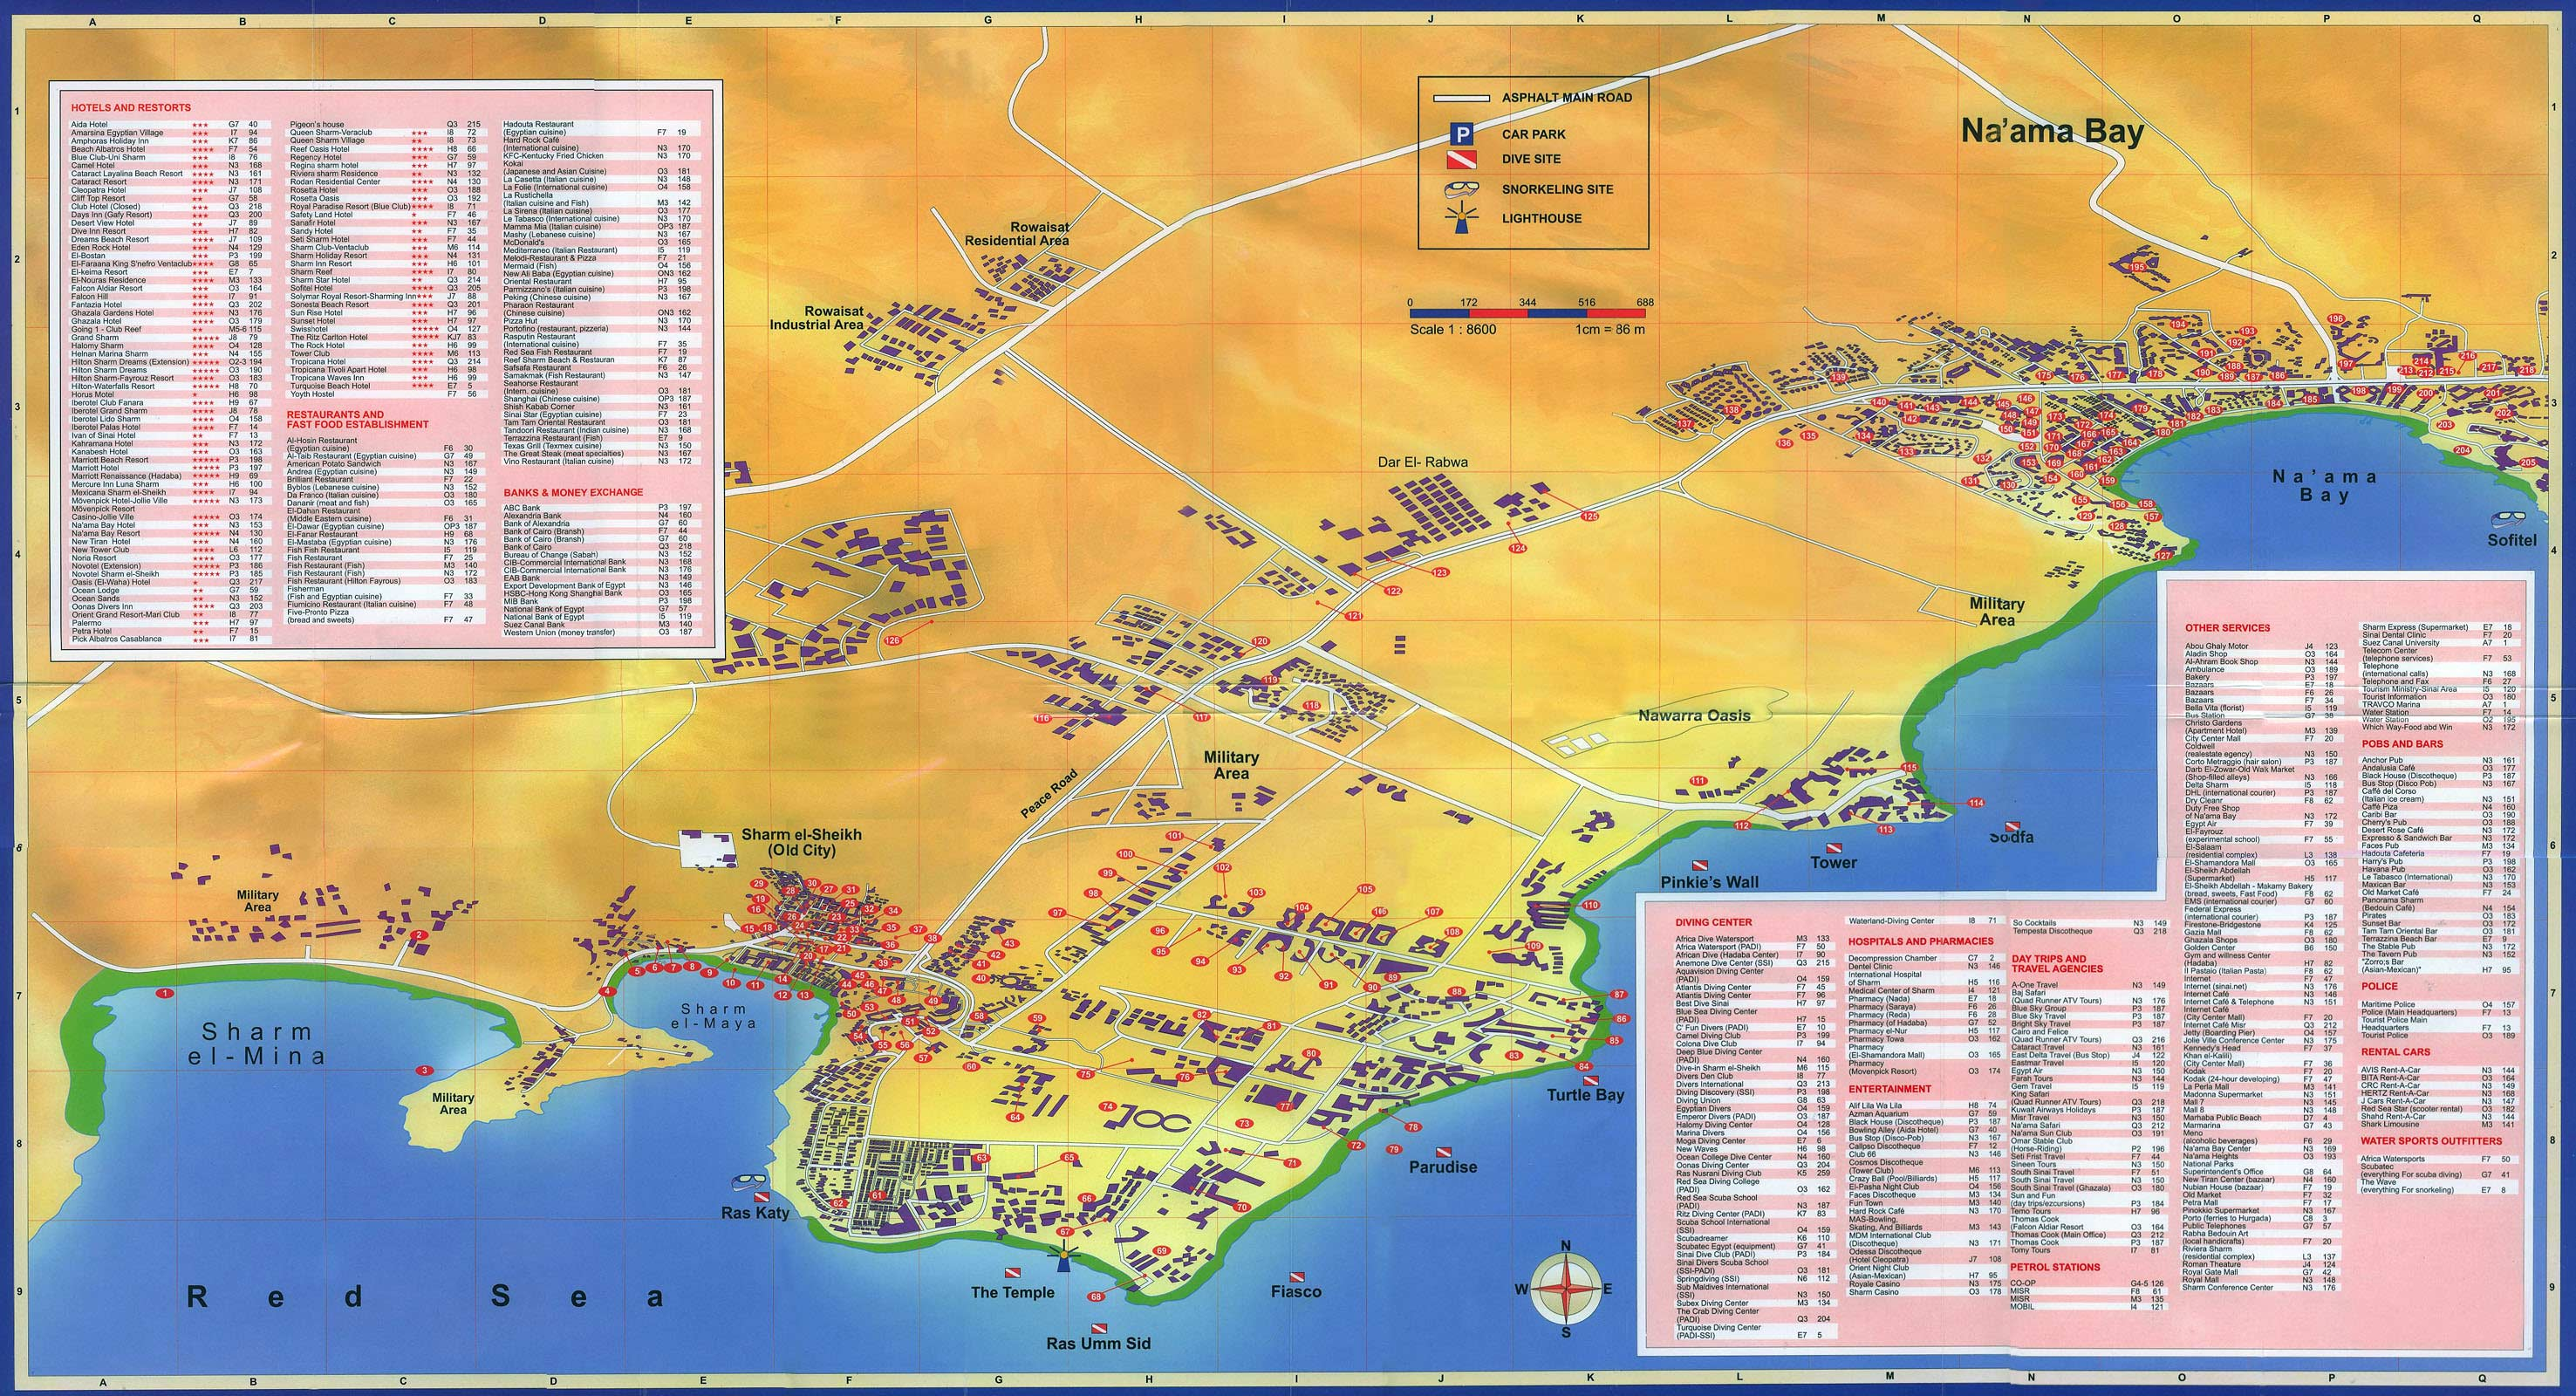 naama bay hotels map with  on Sharm El Sheikh Hotels Xperience Sea Breeze Resort h4672736 as well Tourism G297555 Sharm El Sheikh South Sinai Red Sea and Sinai Vacations also Sharm El Sheikh Hotels The Grand Hotel Sharm El Sheikh 160860 also Red Sea Facts further Hilton Sharm Dreams Resort.